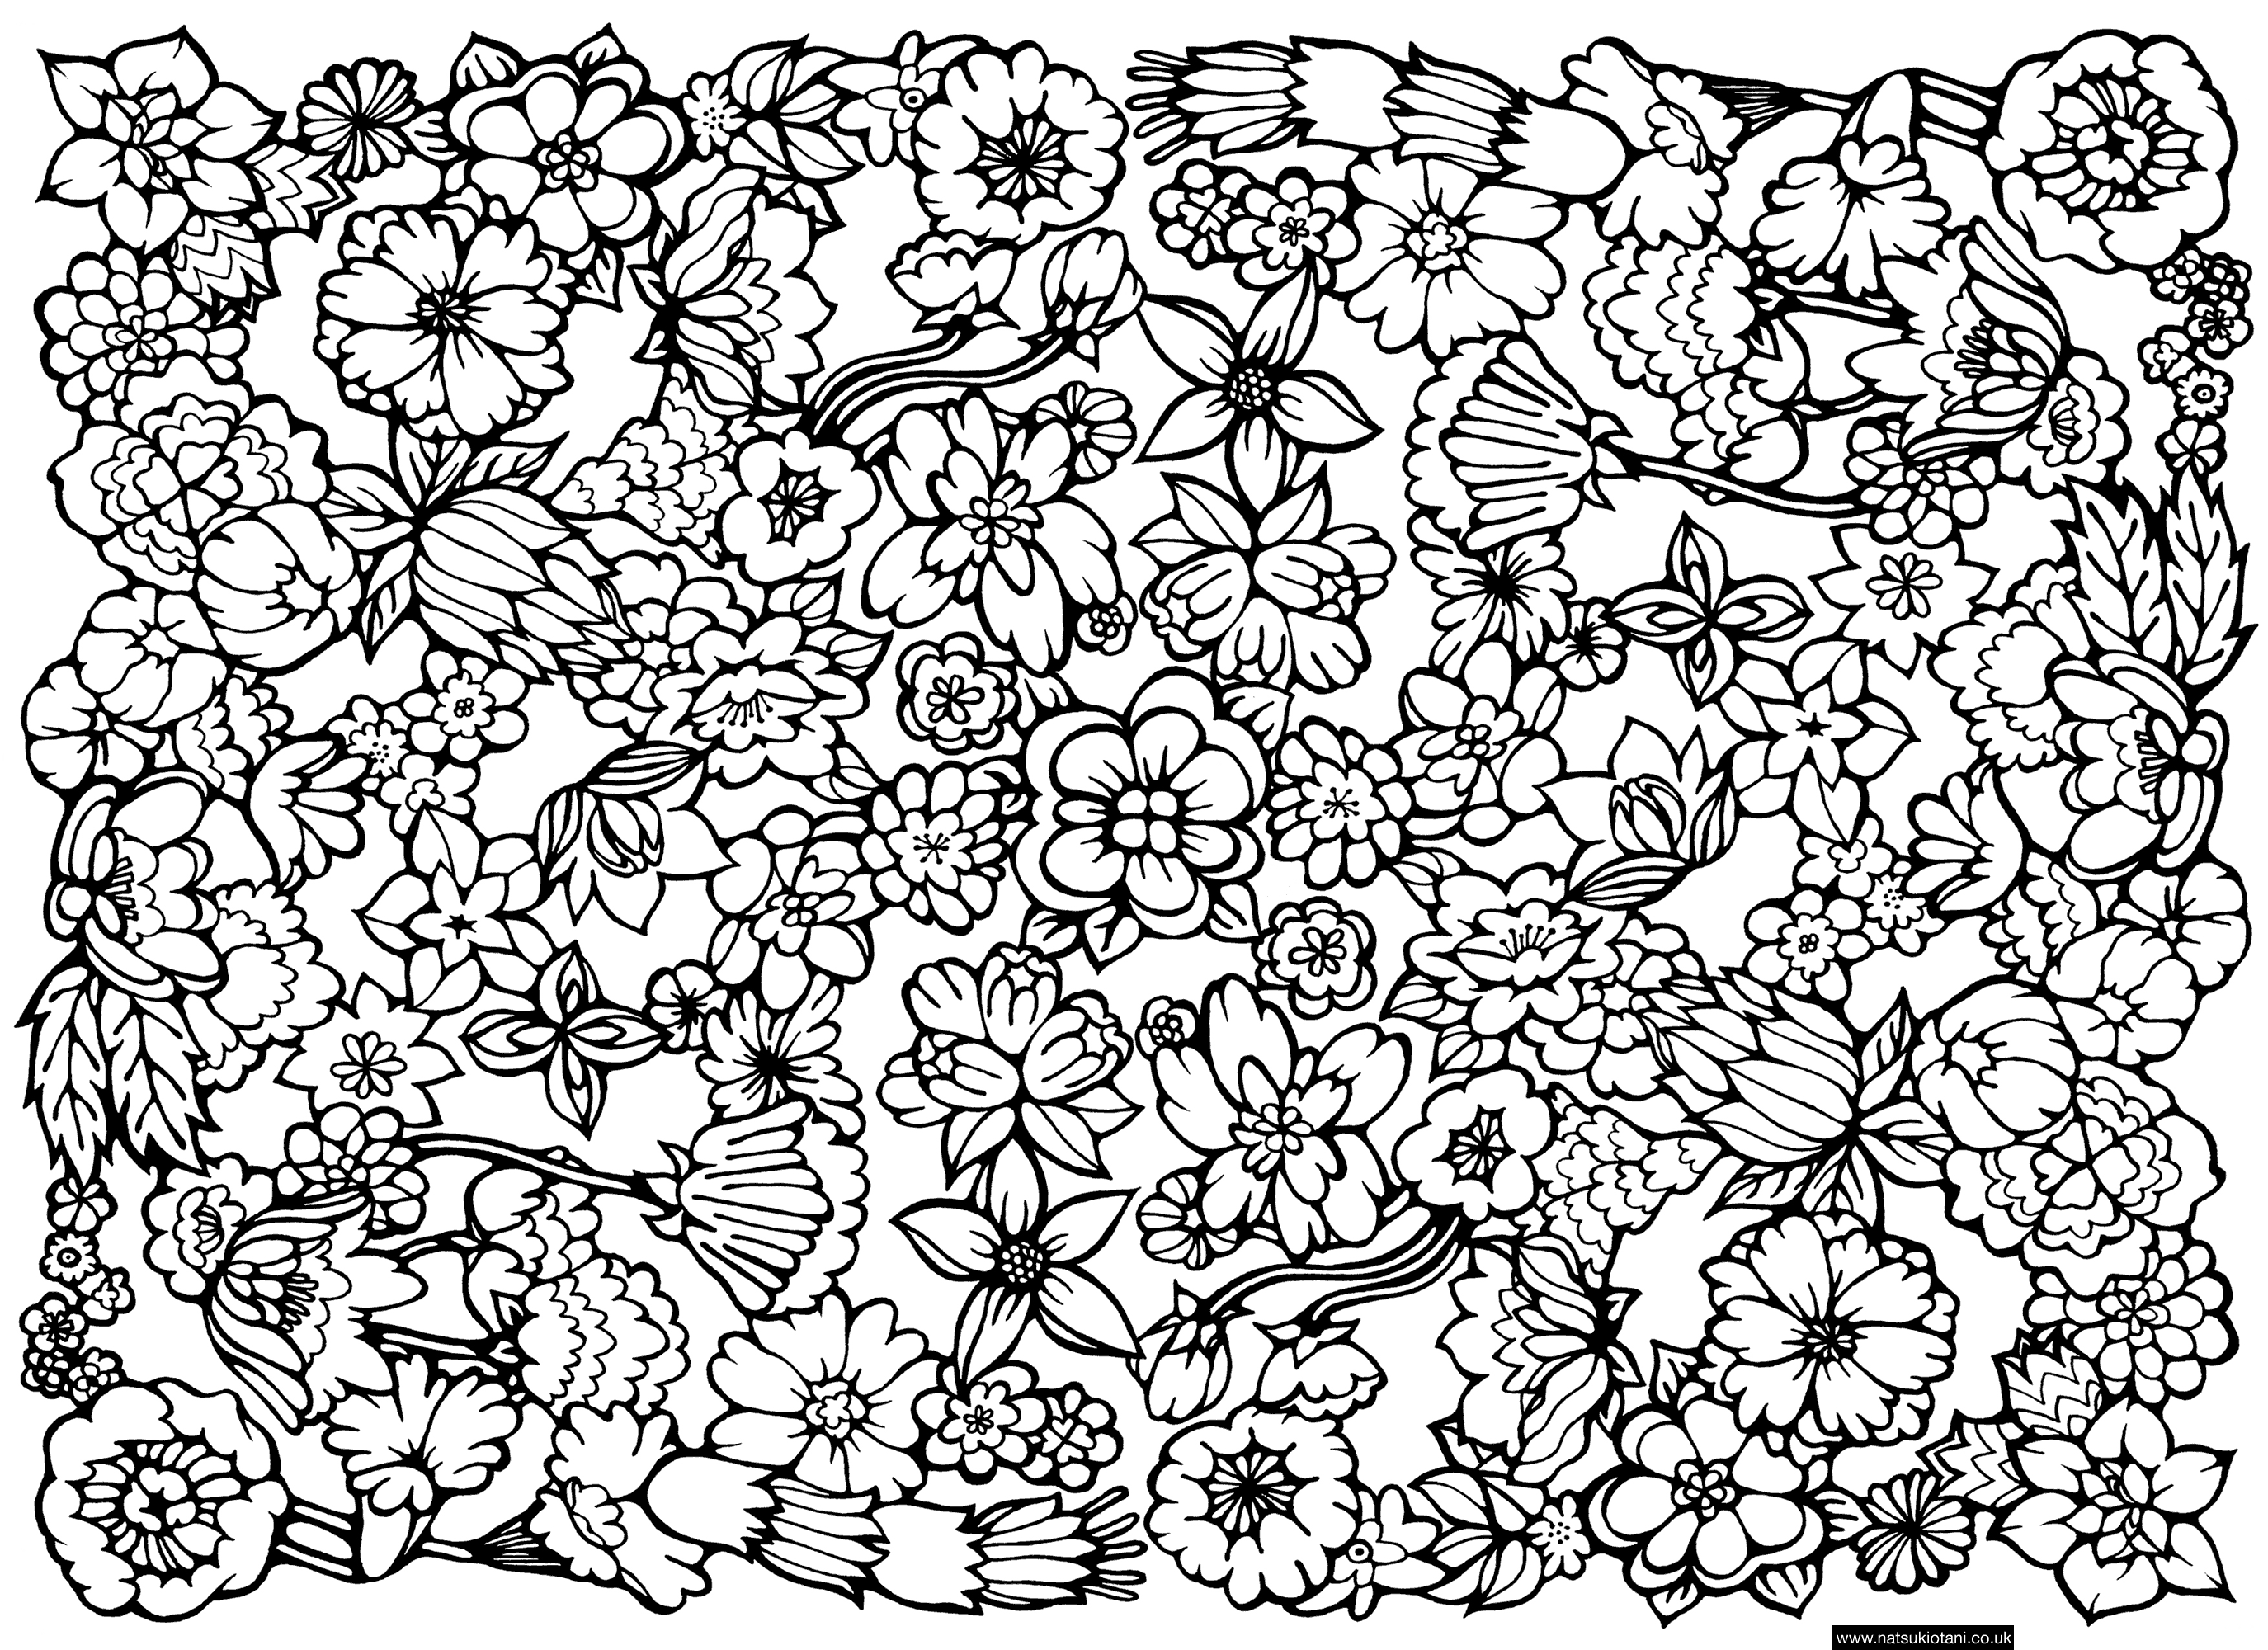 designs to color free coloring pages hard designs coloring home to color free designs